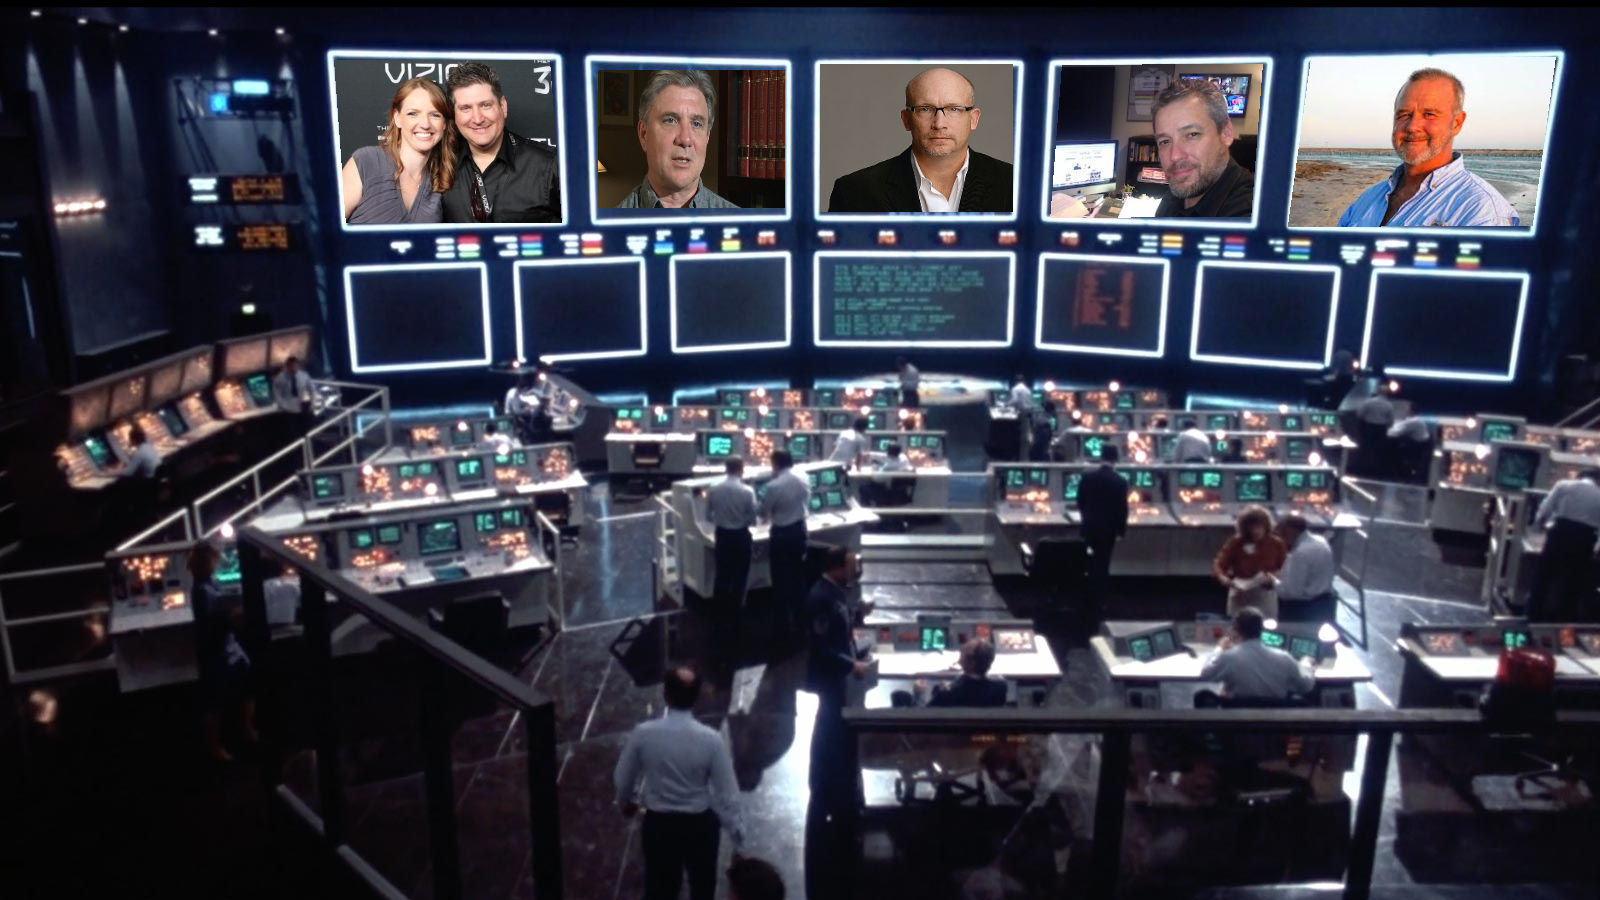 Galactic War Room